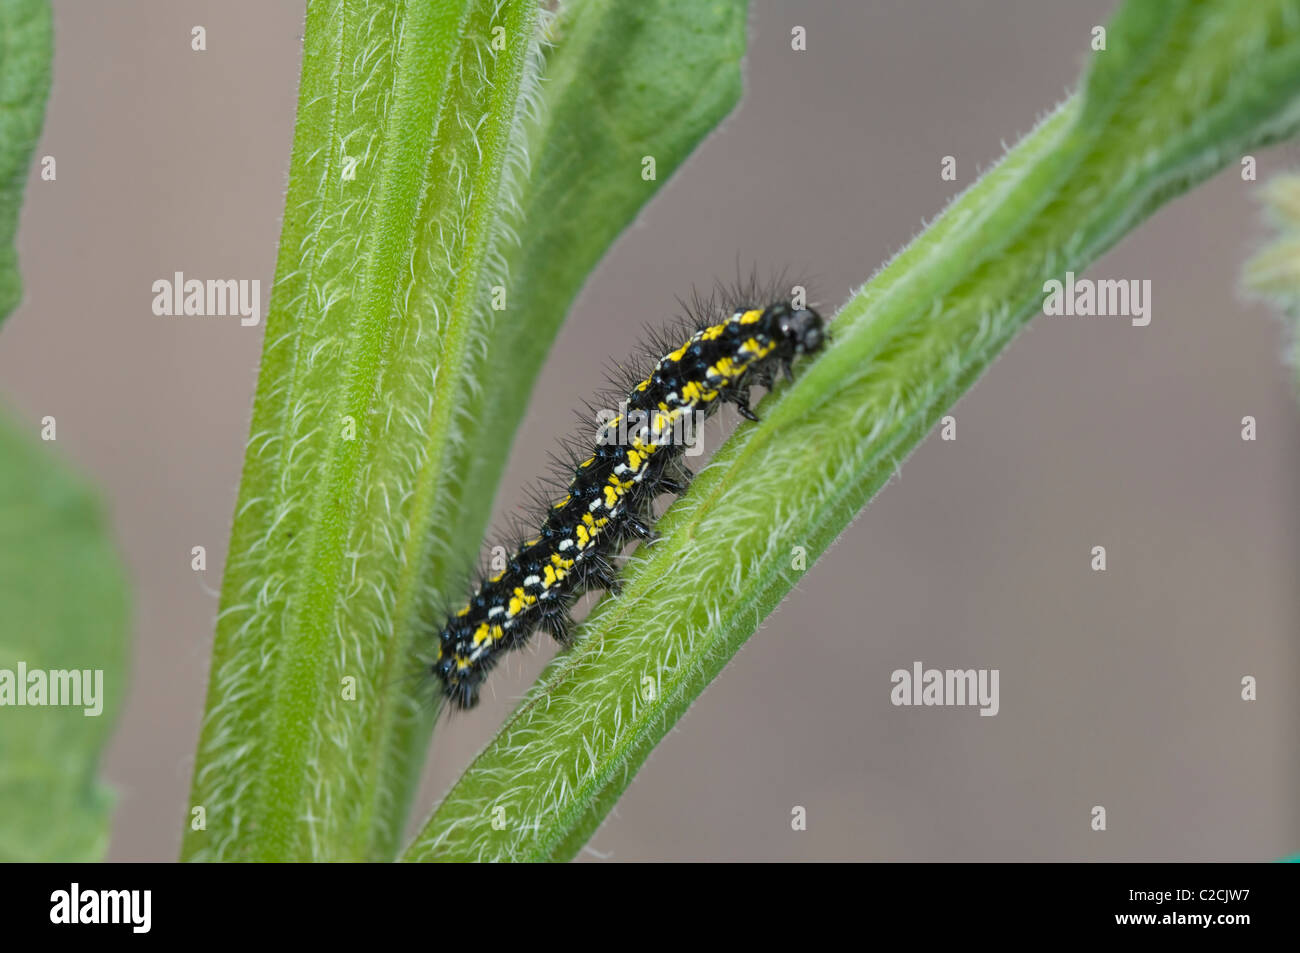 Small Tortoiseshell Caterpillar (Aglais urticae) on Comfrey leaf, France - Stock Image